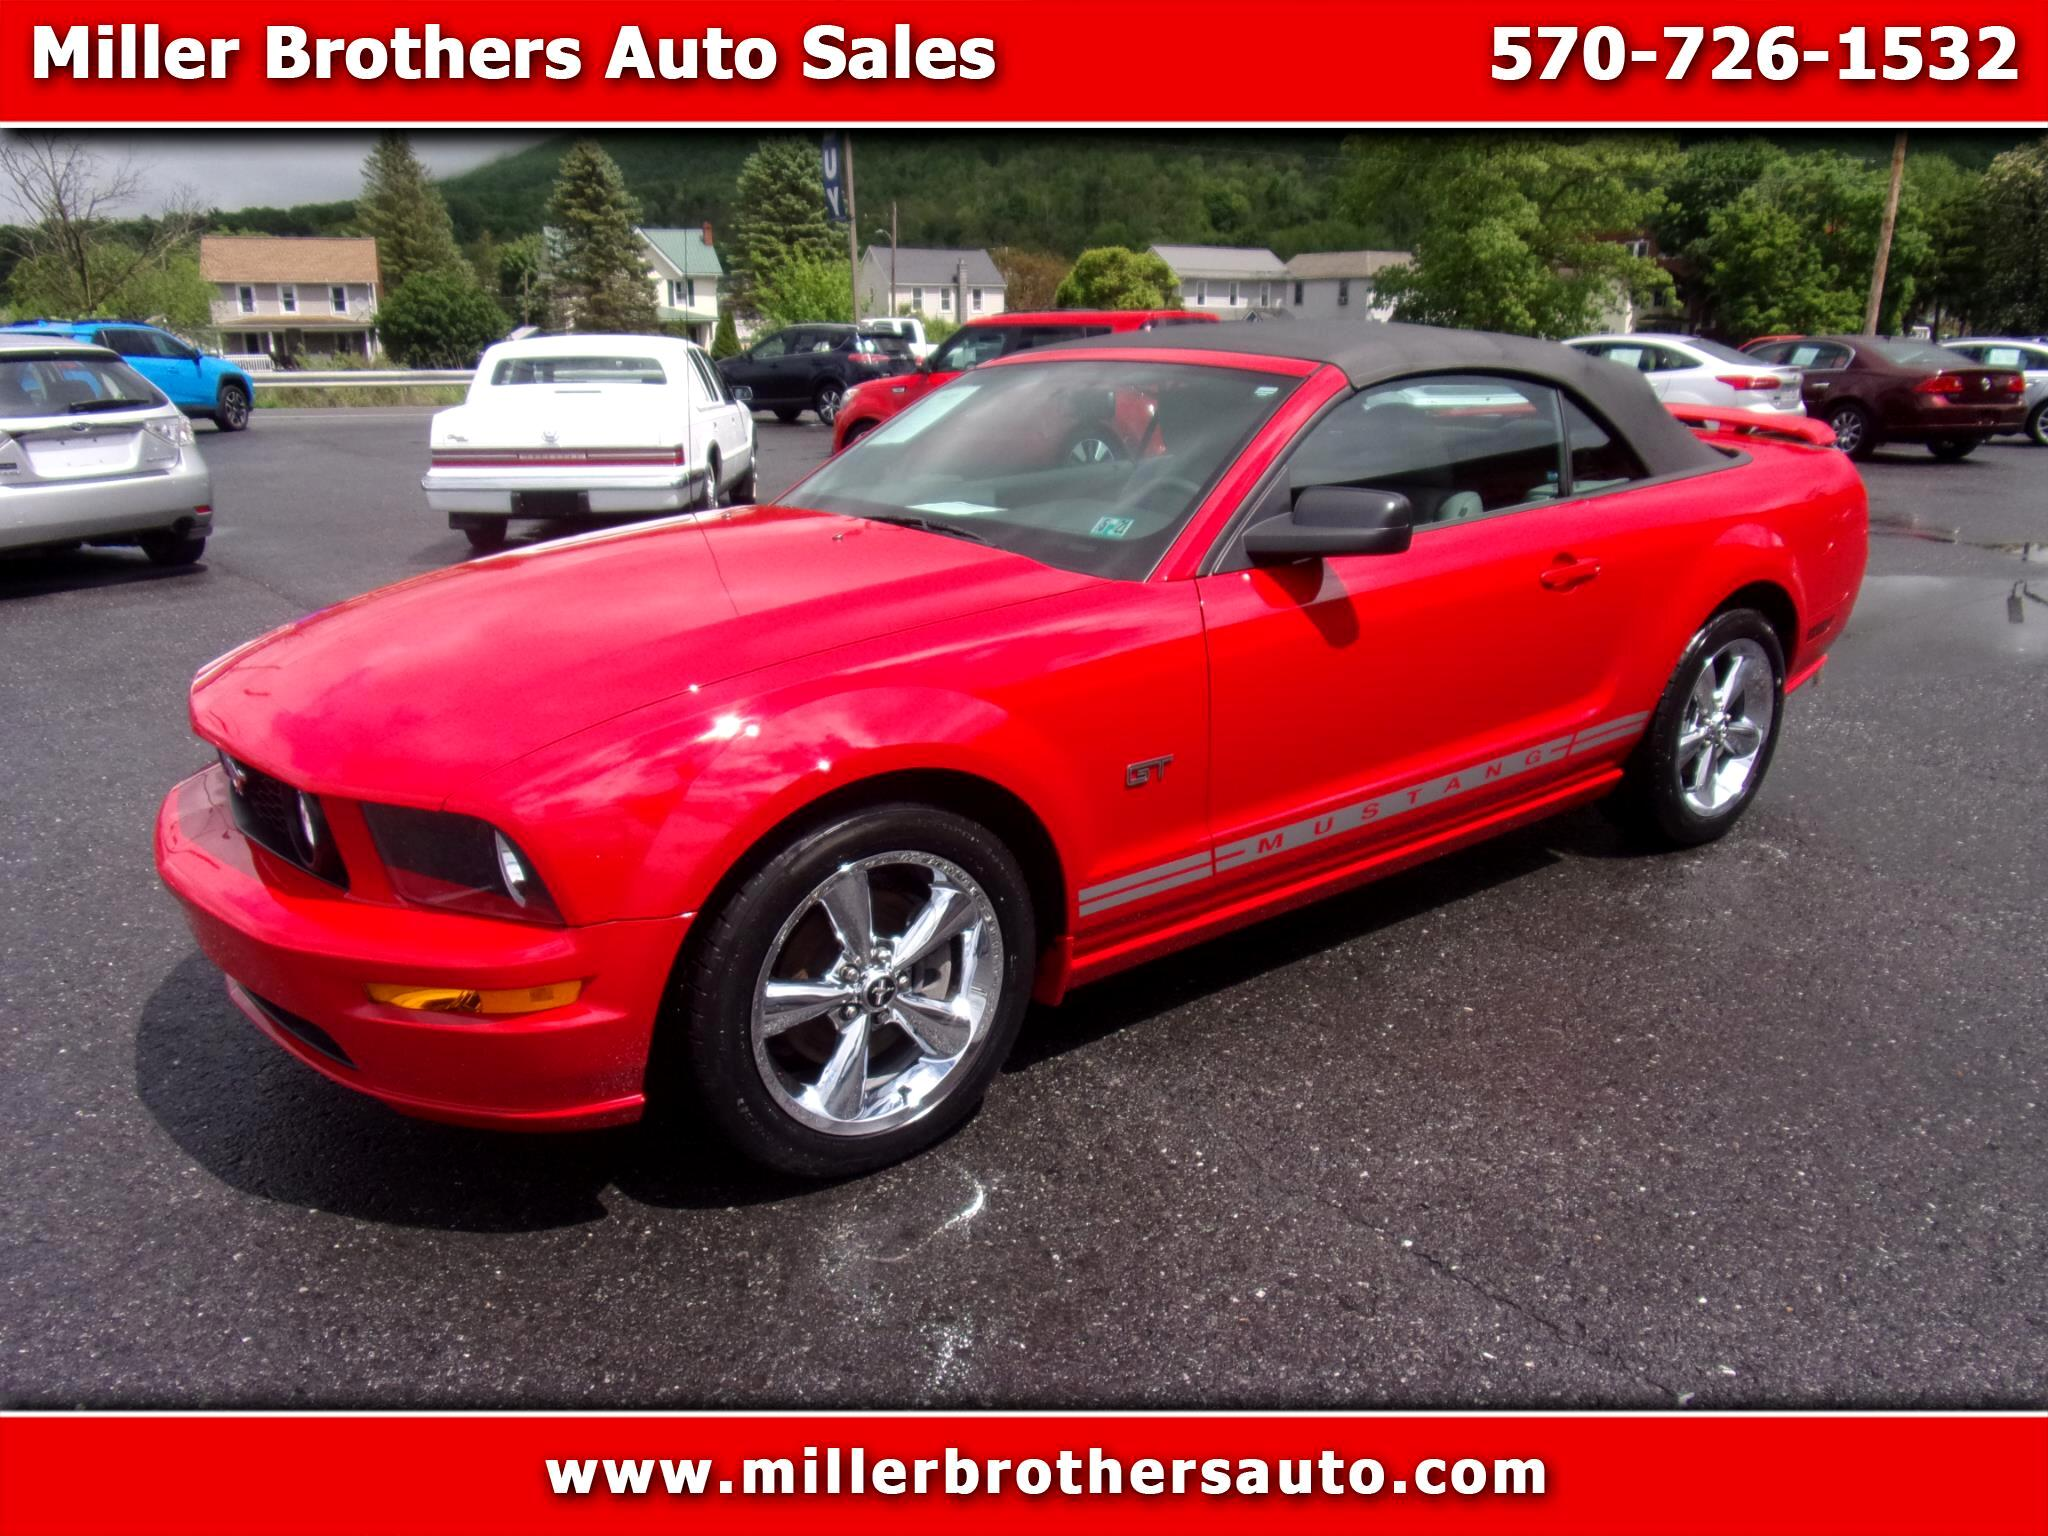 Ford Mustang 2dr Conv GT Deluxe 2008